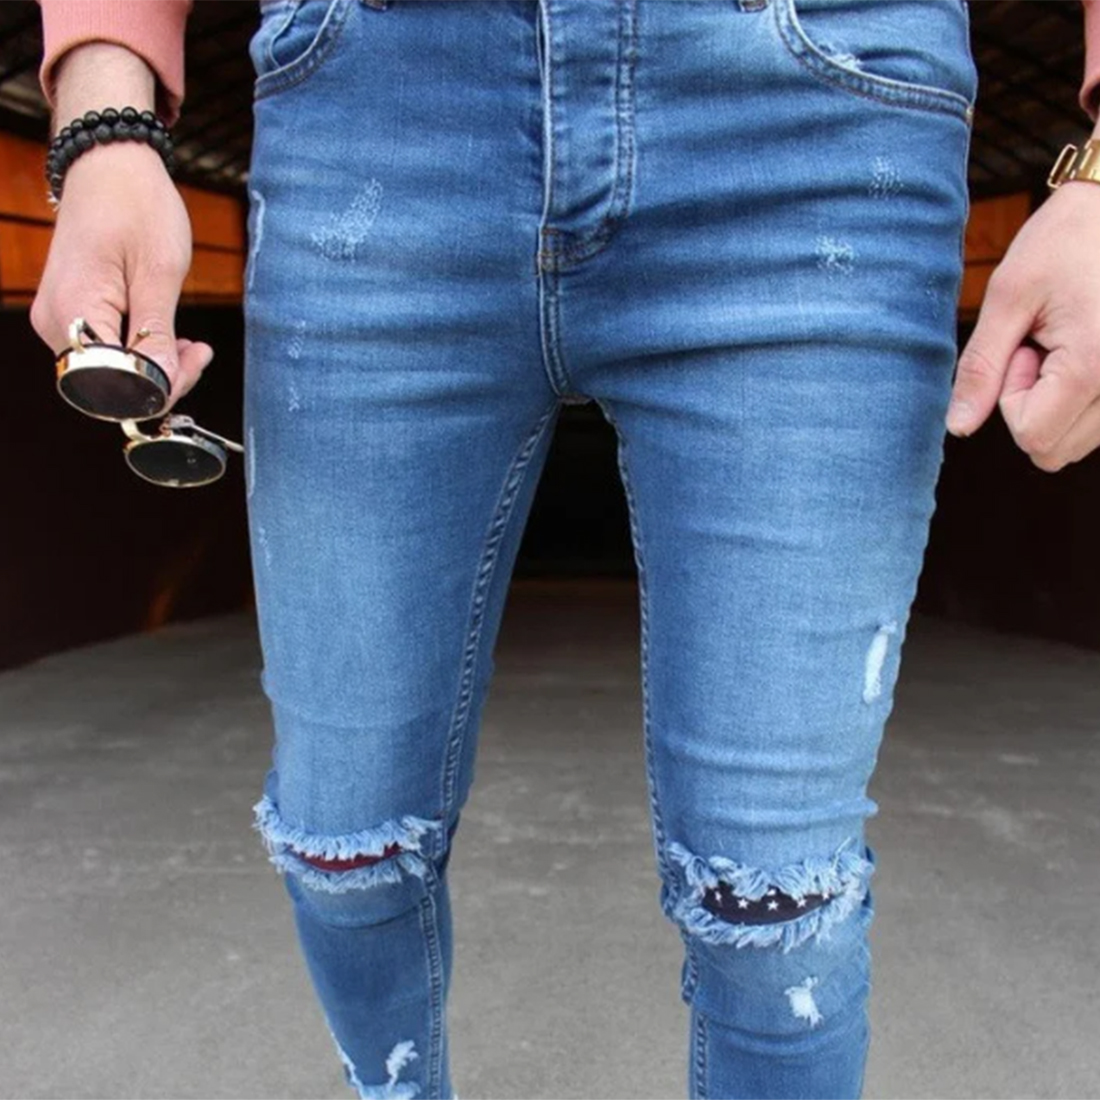 UEFEZO Fashion Streetwear Mens Jeans Destroyed Ripped Design Pencil Pants 2020 Solid Ankle Skinny Men Full Length Jeans